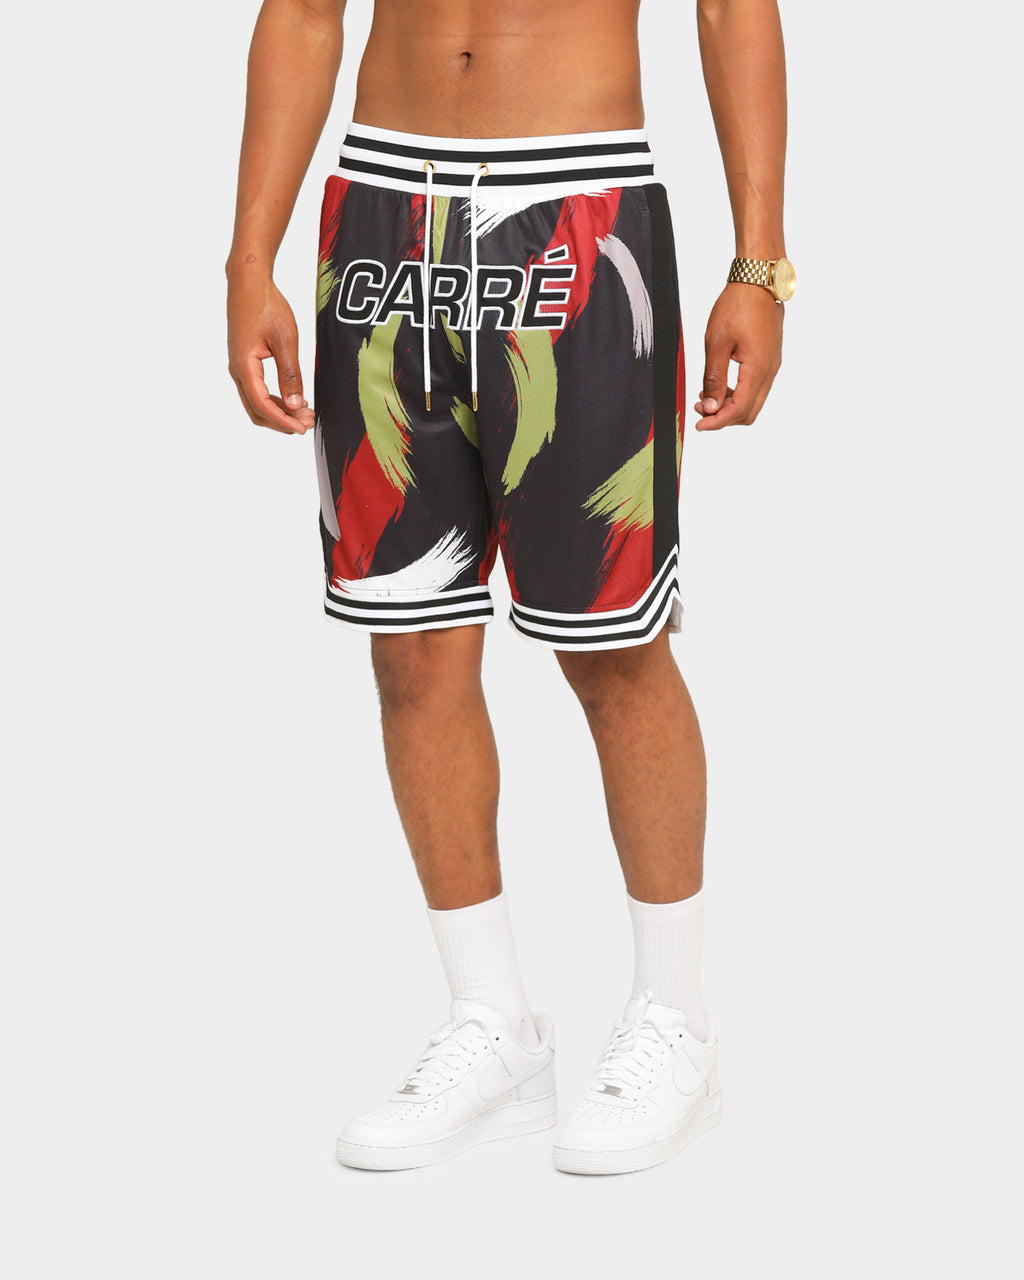 Carré Men's Retro Ball Short Black/Red/Gold